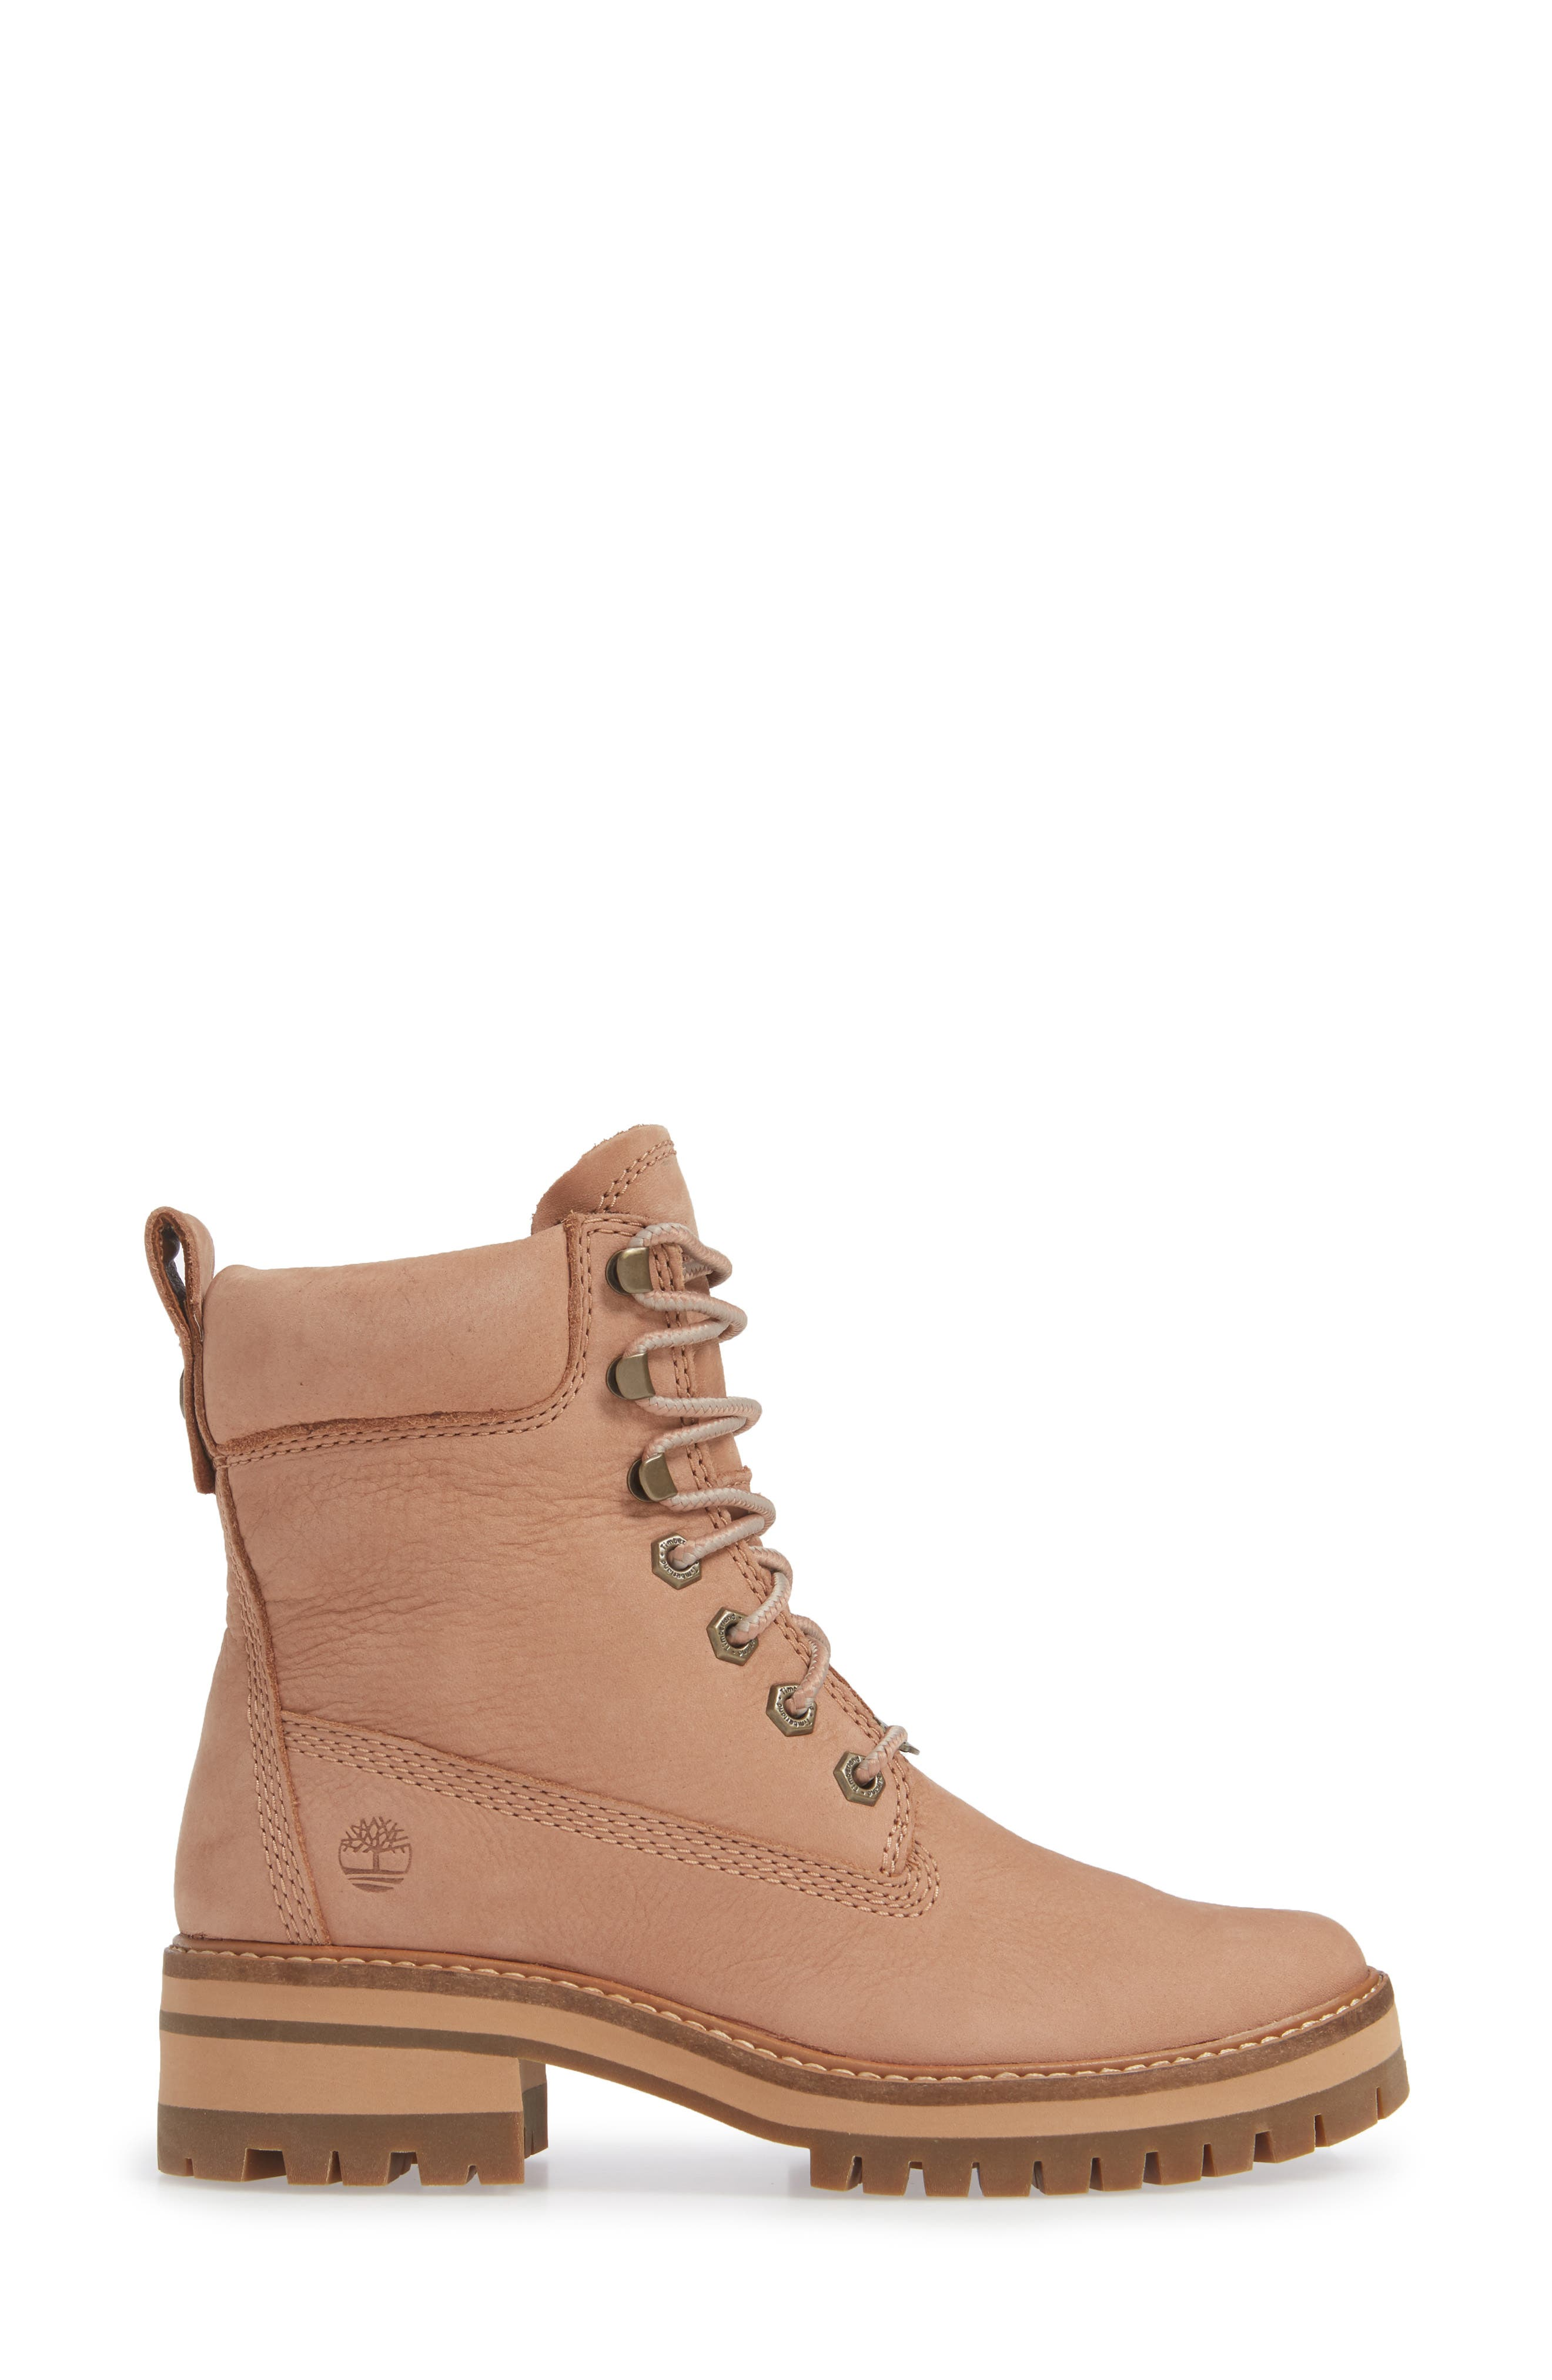 Courmayeur Valley Water Resistant Hiking Boot,                             Alternate thumbnail 3, color,                             TAWNY BROWN NUBUCK